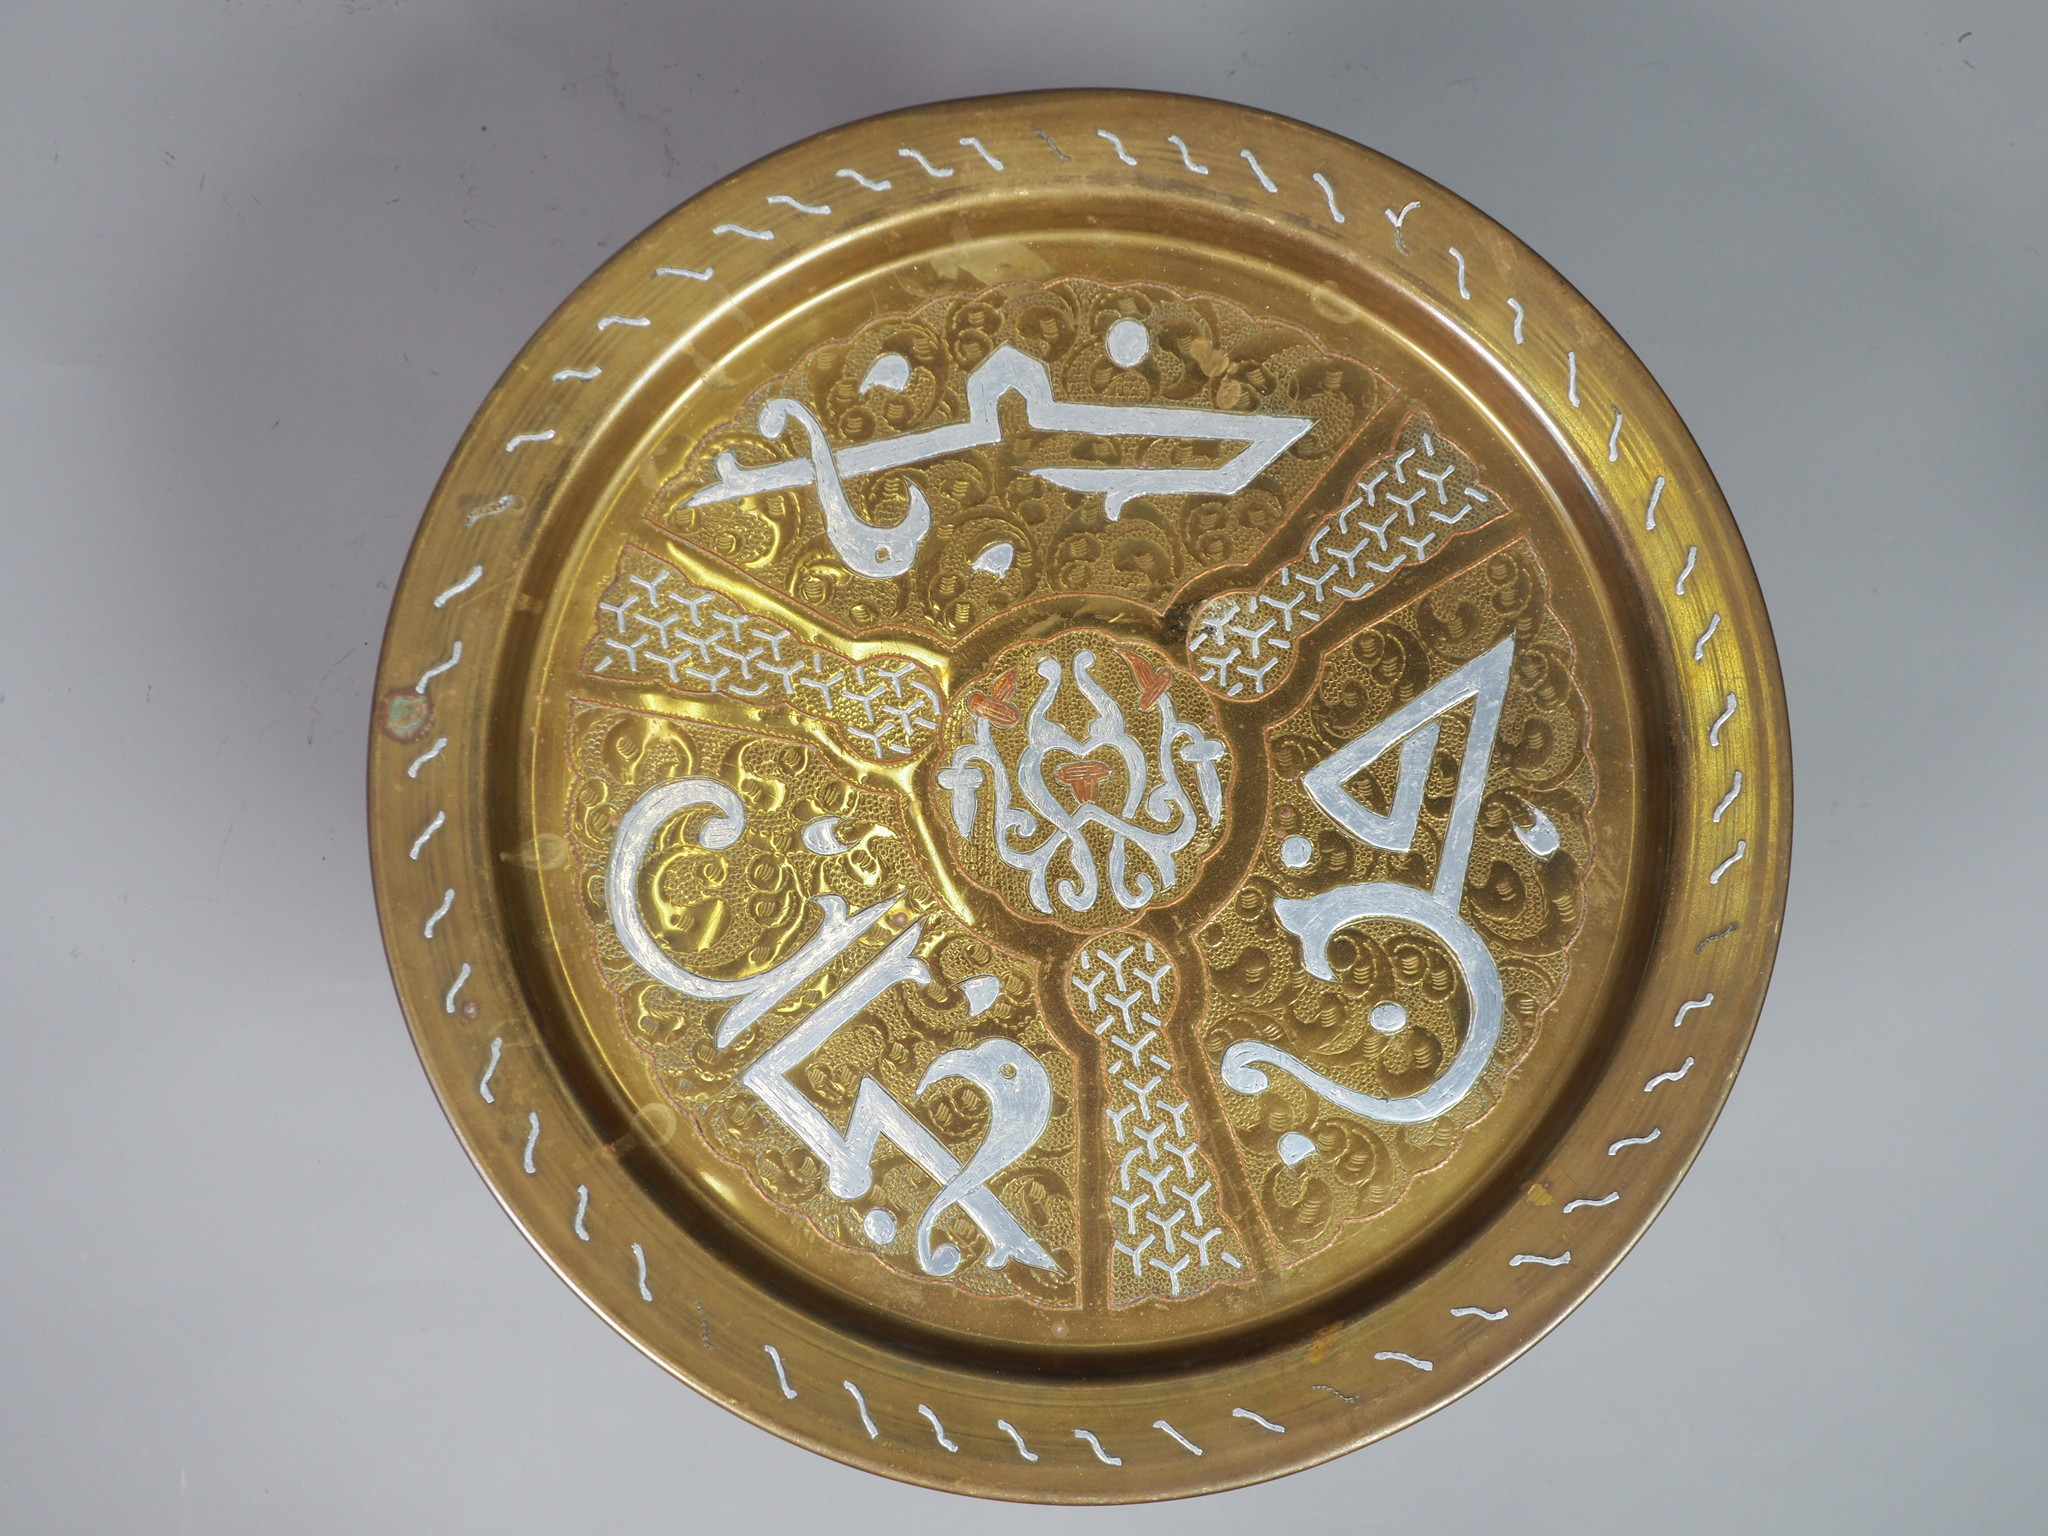 39 cm Antique ottoman orient Islamic Hammer Engraved Brass Tray Syria Morocco, Egypt Mamluk Cairoware with arabic calligraphy K11